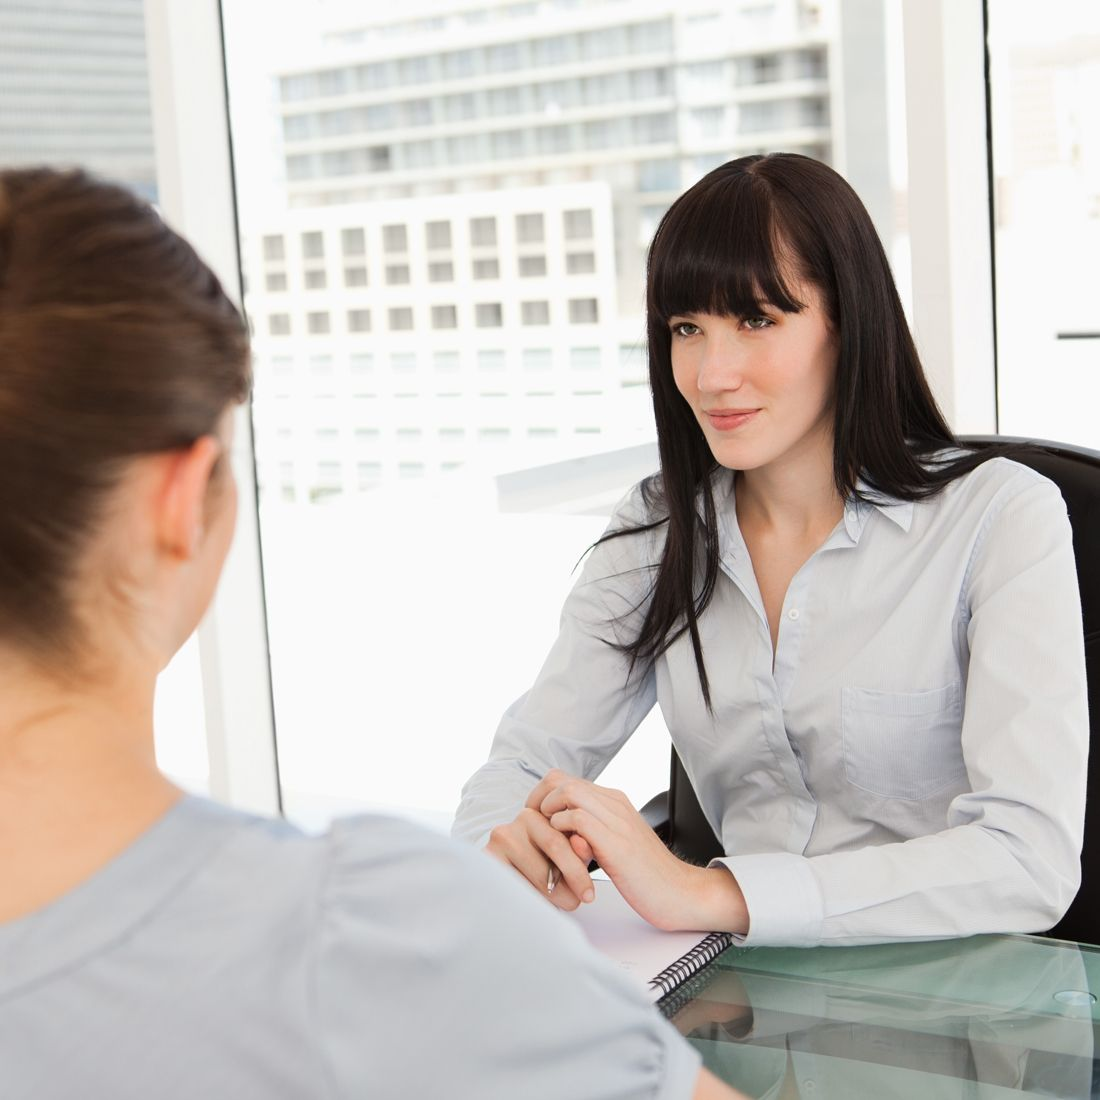 Get Hired on the Spot With These InterviewAppropriate Beauty Tips